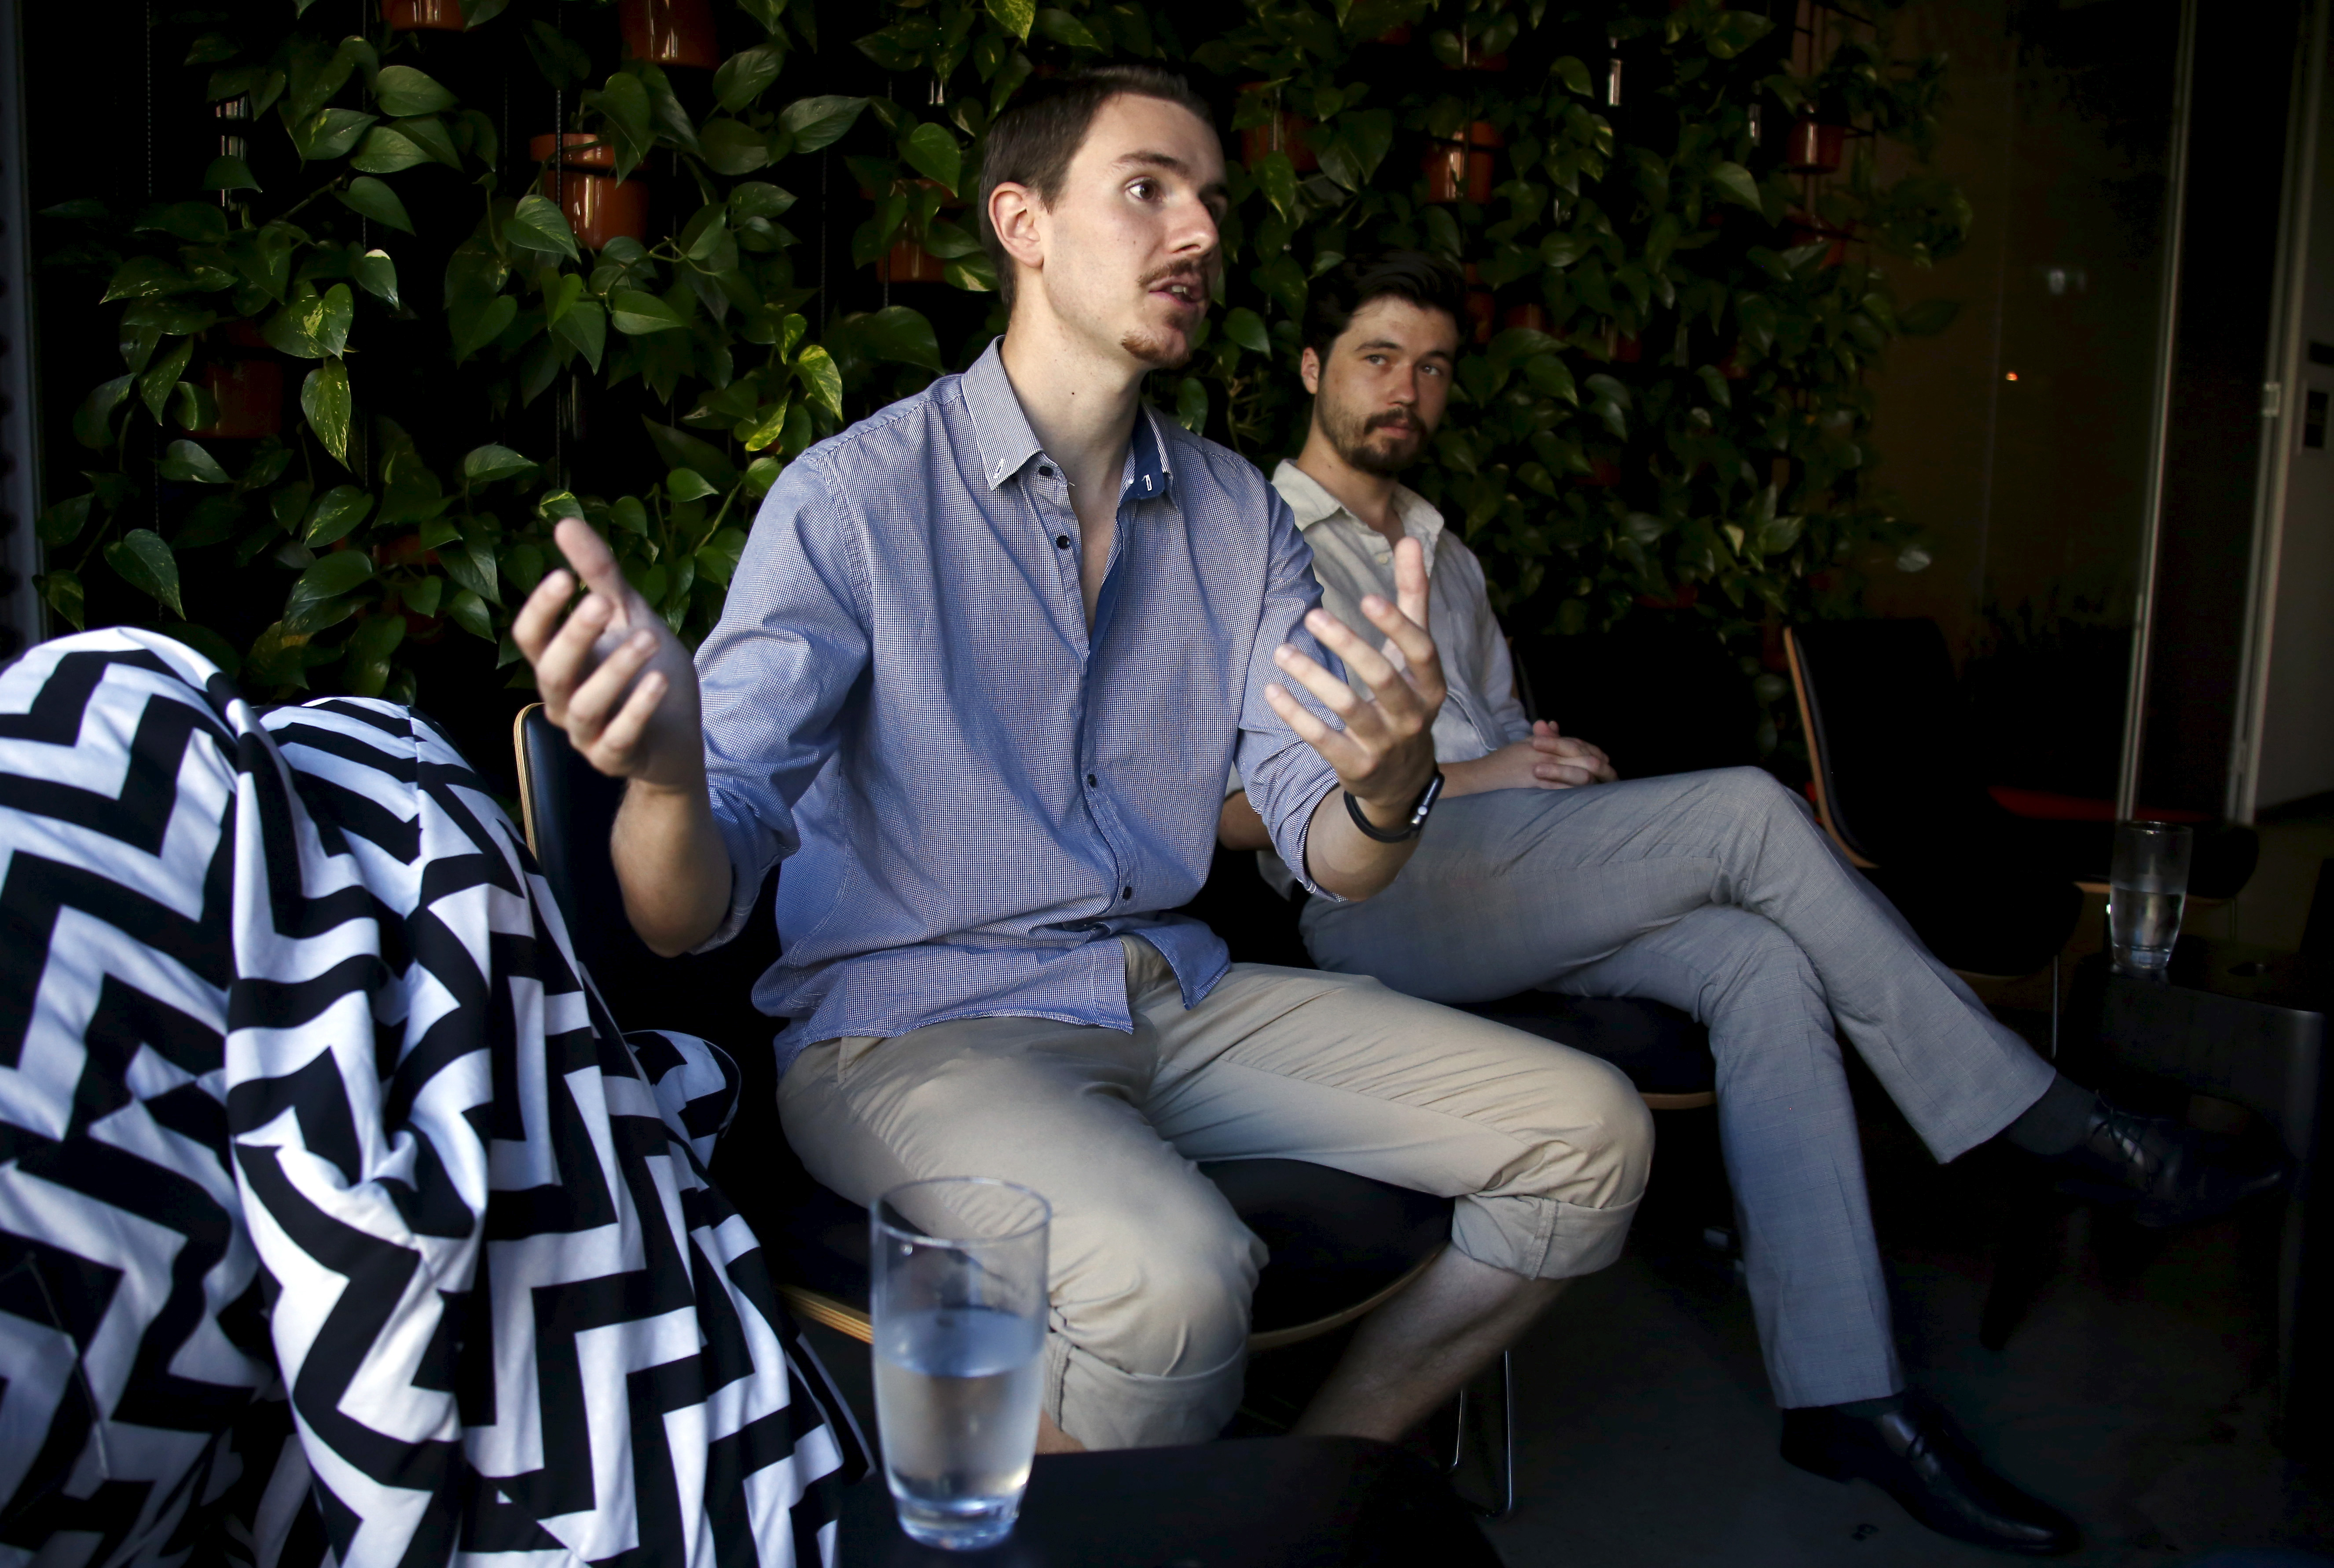 Max Kaye (R) and Nathan Spataro, co-founders of Flux, a new Australian political party, talk as they sit on couches in an office building in central Sydney, Australia, Feb. 13, 2016